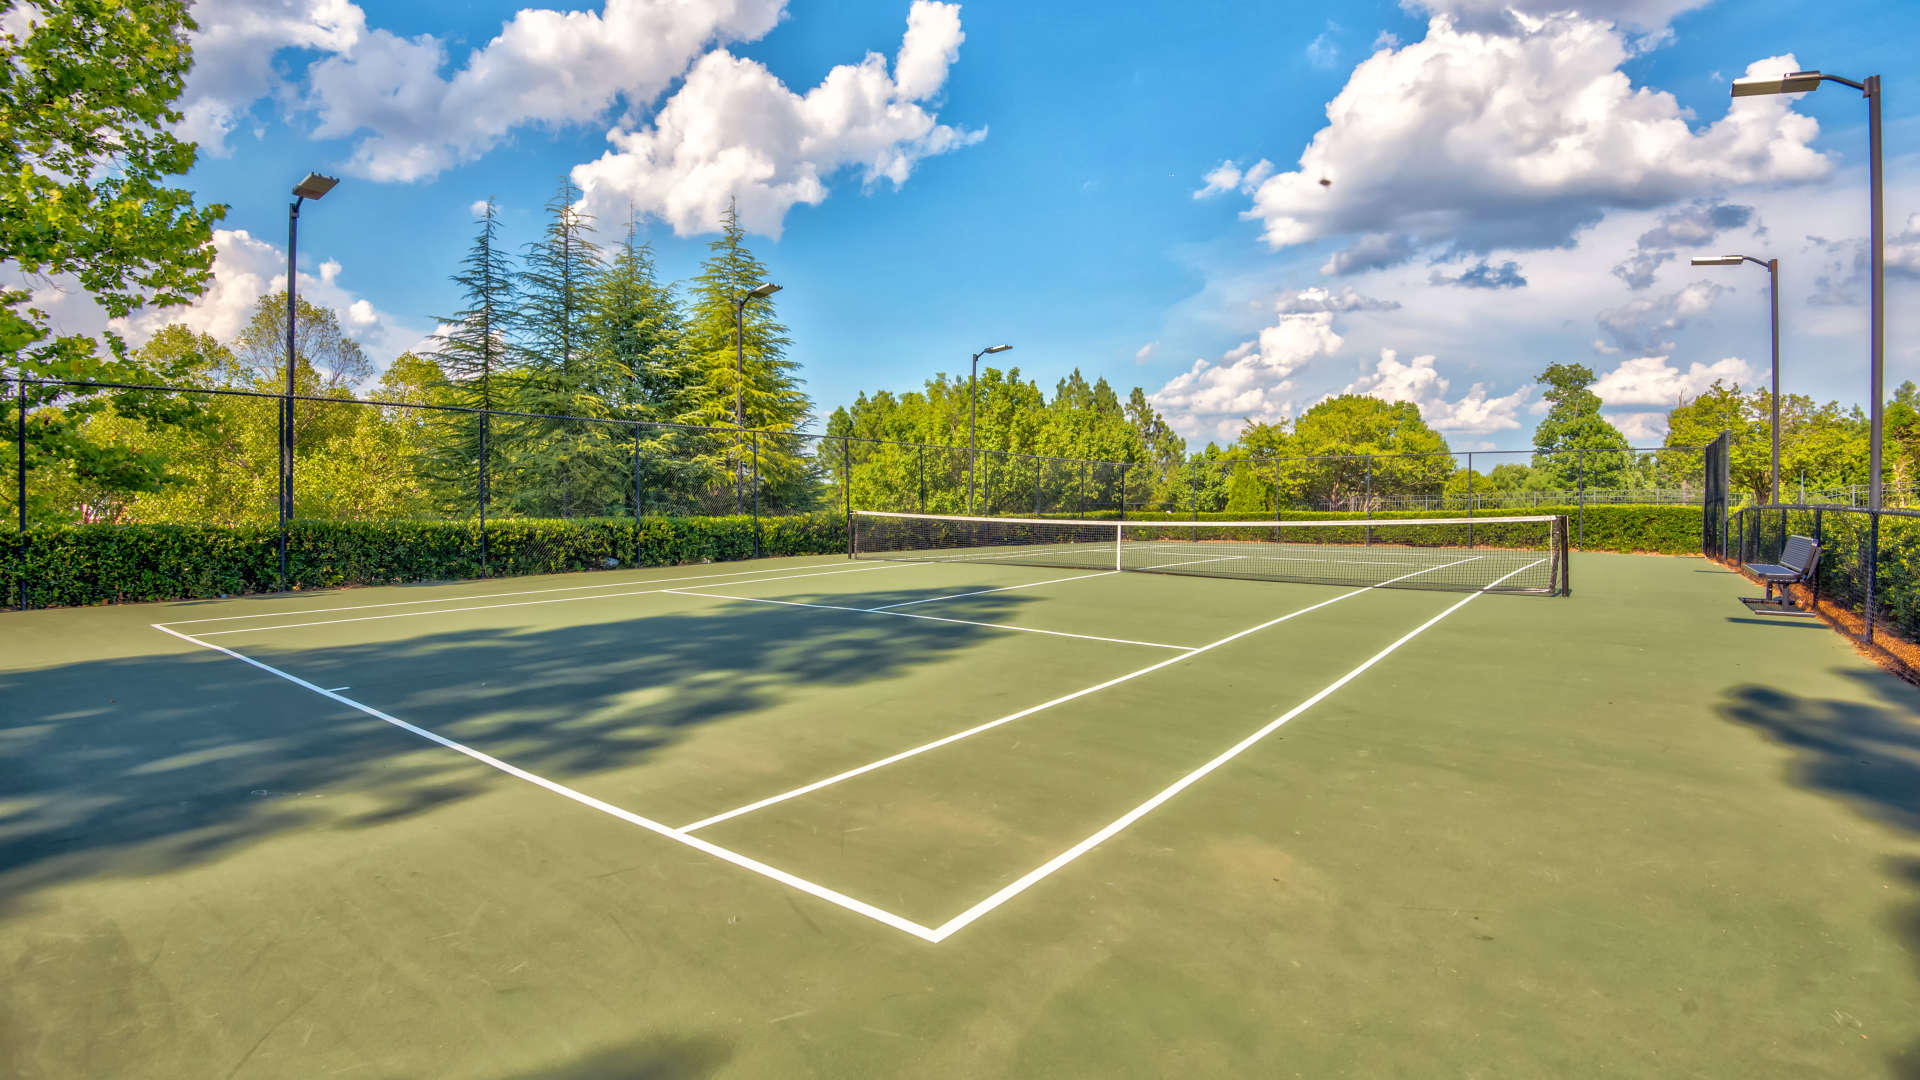 Tennis court at 200 East in Durham, North Carolina